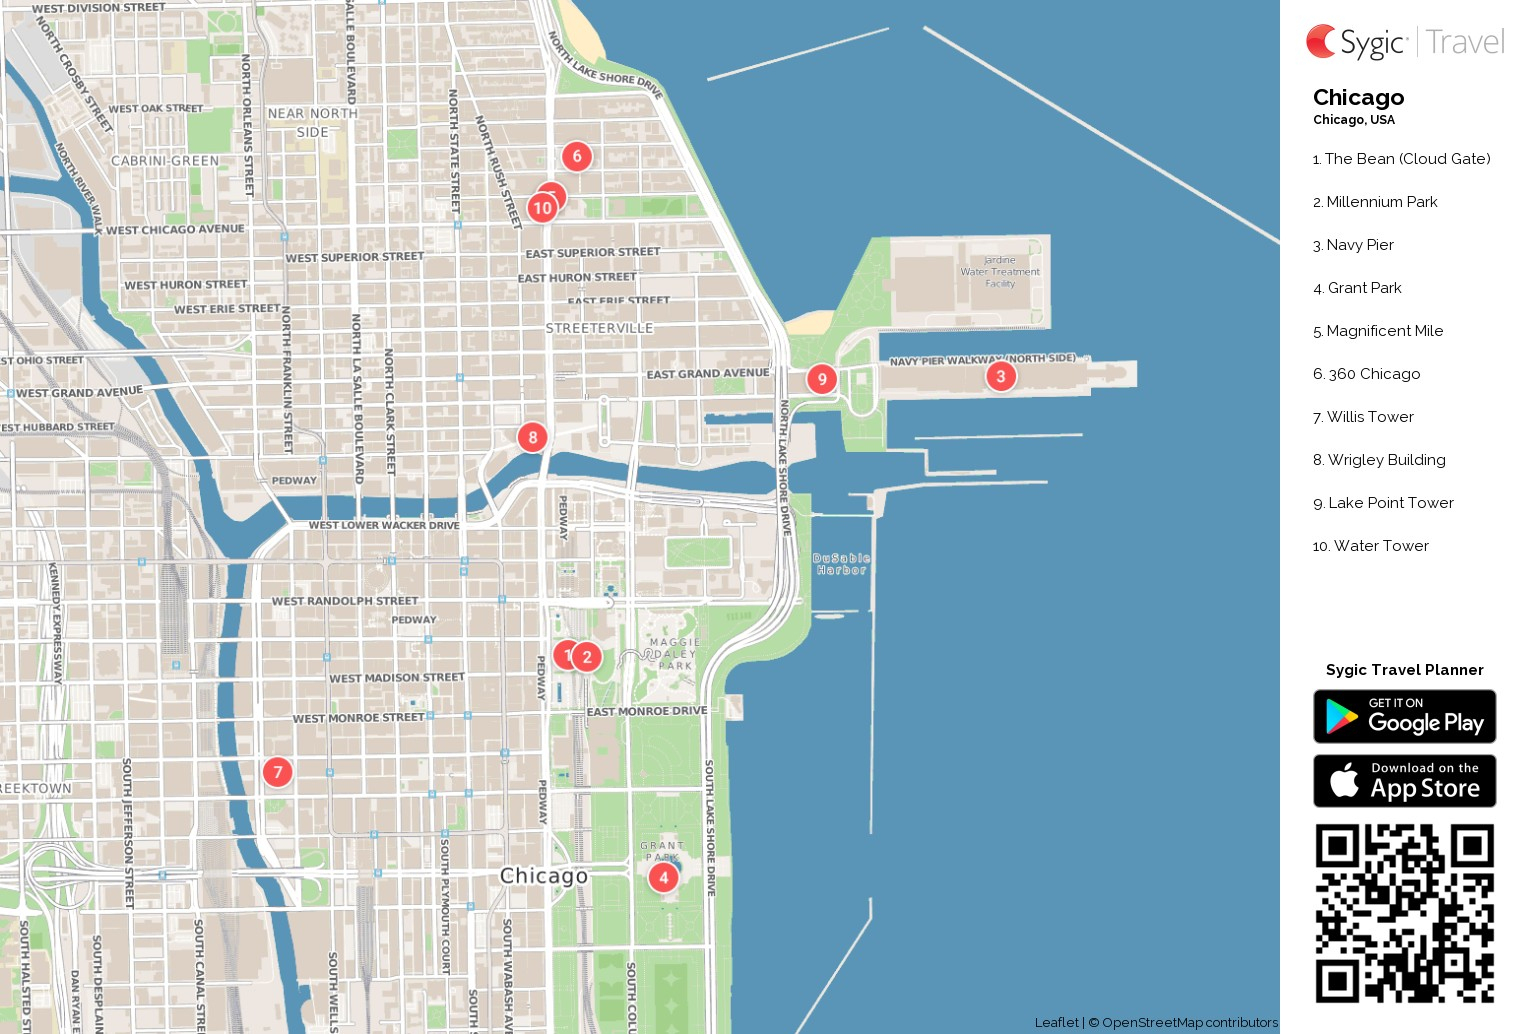 Map Of Chicago Printable Tourist 87318 Png Filetype   D1Softball - Printable Map Of Chicago